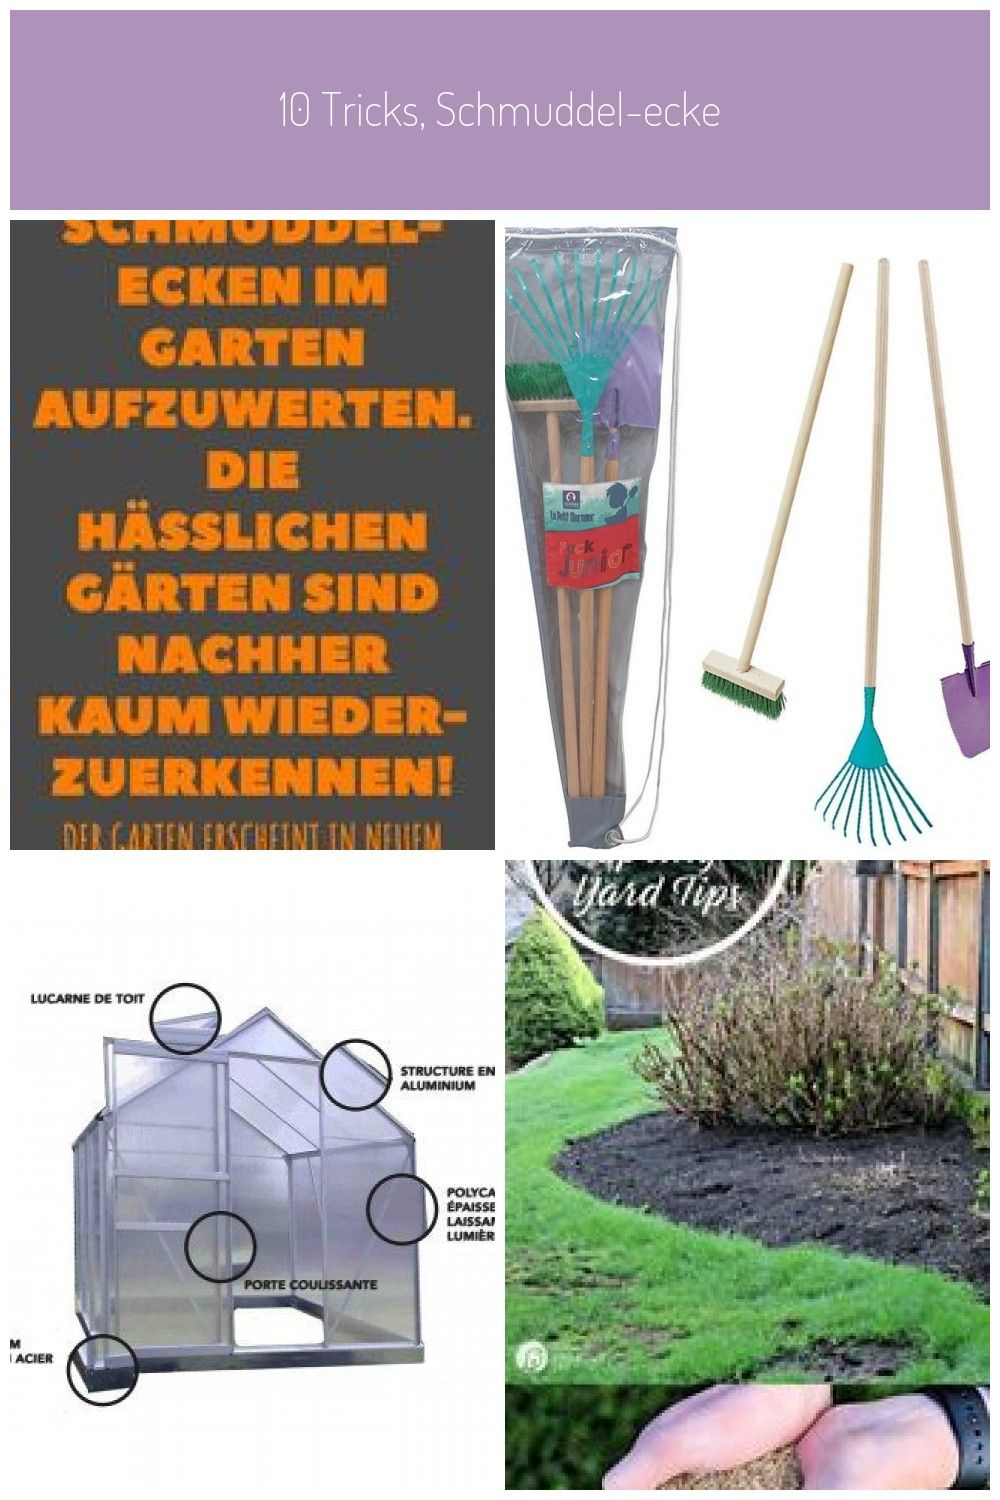 10 Tricks, Schmuddel-Ecken im Garten aufzuwerten. Die hässlichen Gärten sind n...,  #aufzuwerten #beautifulhomegarden #besthomegarden #Die #dreamhomegarden #easyhomegarden #Garten #hässlichen #homegardenaesthetic #homegardenapartment #homegardenarchitecture #homegardenbackyard #homegardenbalcony #homegardenbar #homegardenbeginner #homegardenboxes #homegardendecoration #homegardendesign #h... #entretien du jardin 10 Tricks, Schmuddel-Ecken im Garten aufzuwerten. Die hässlichen Gärten sind n...